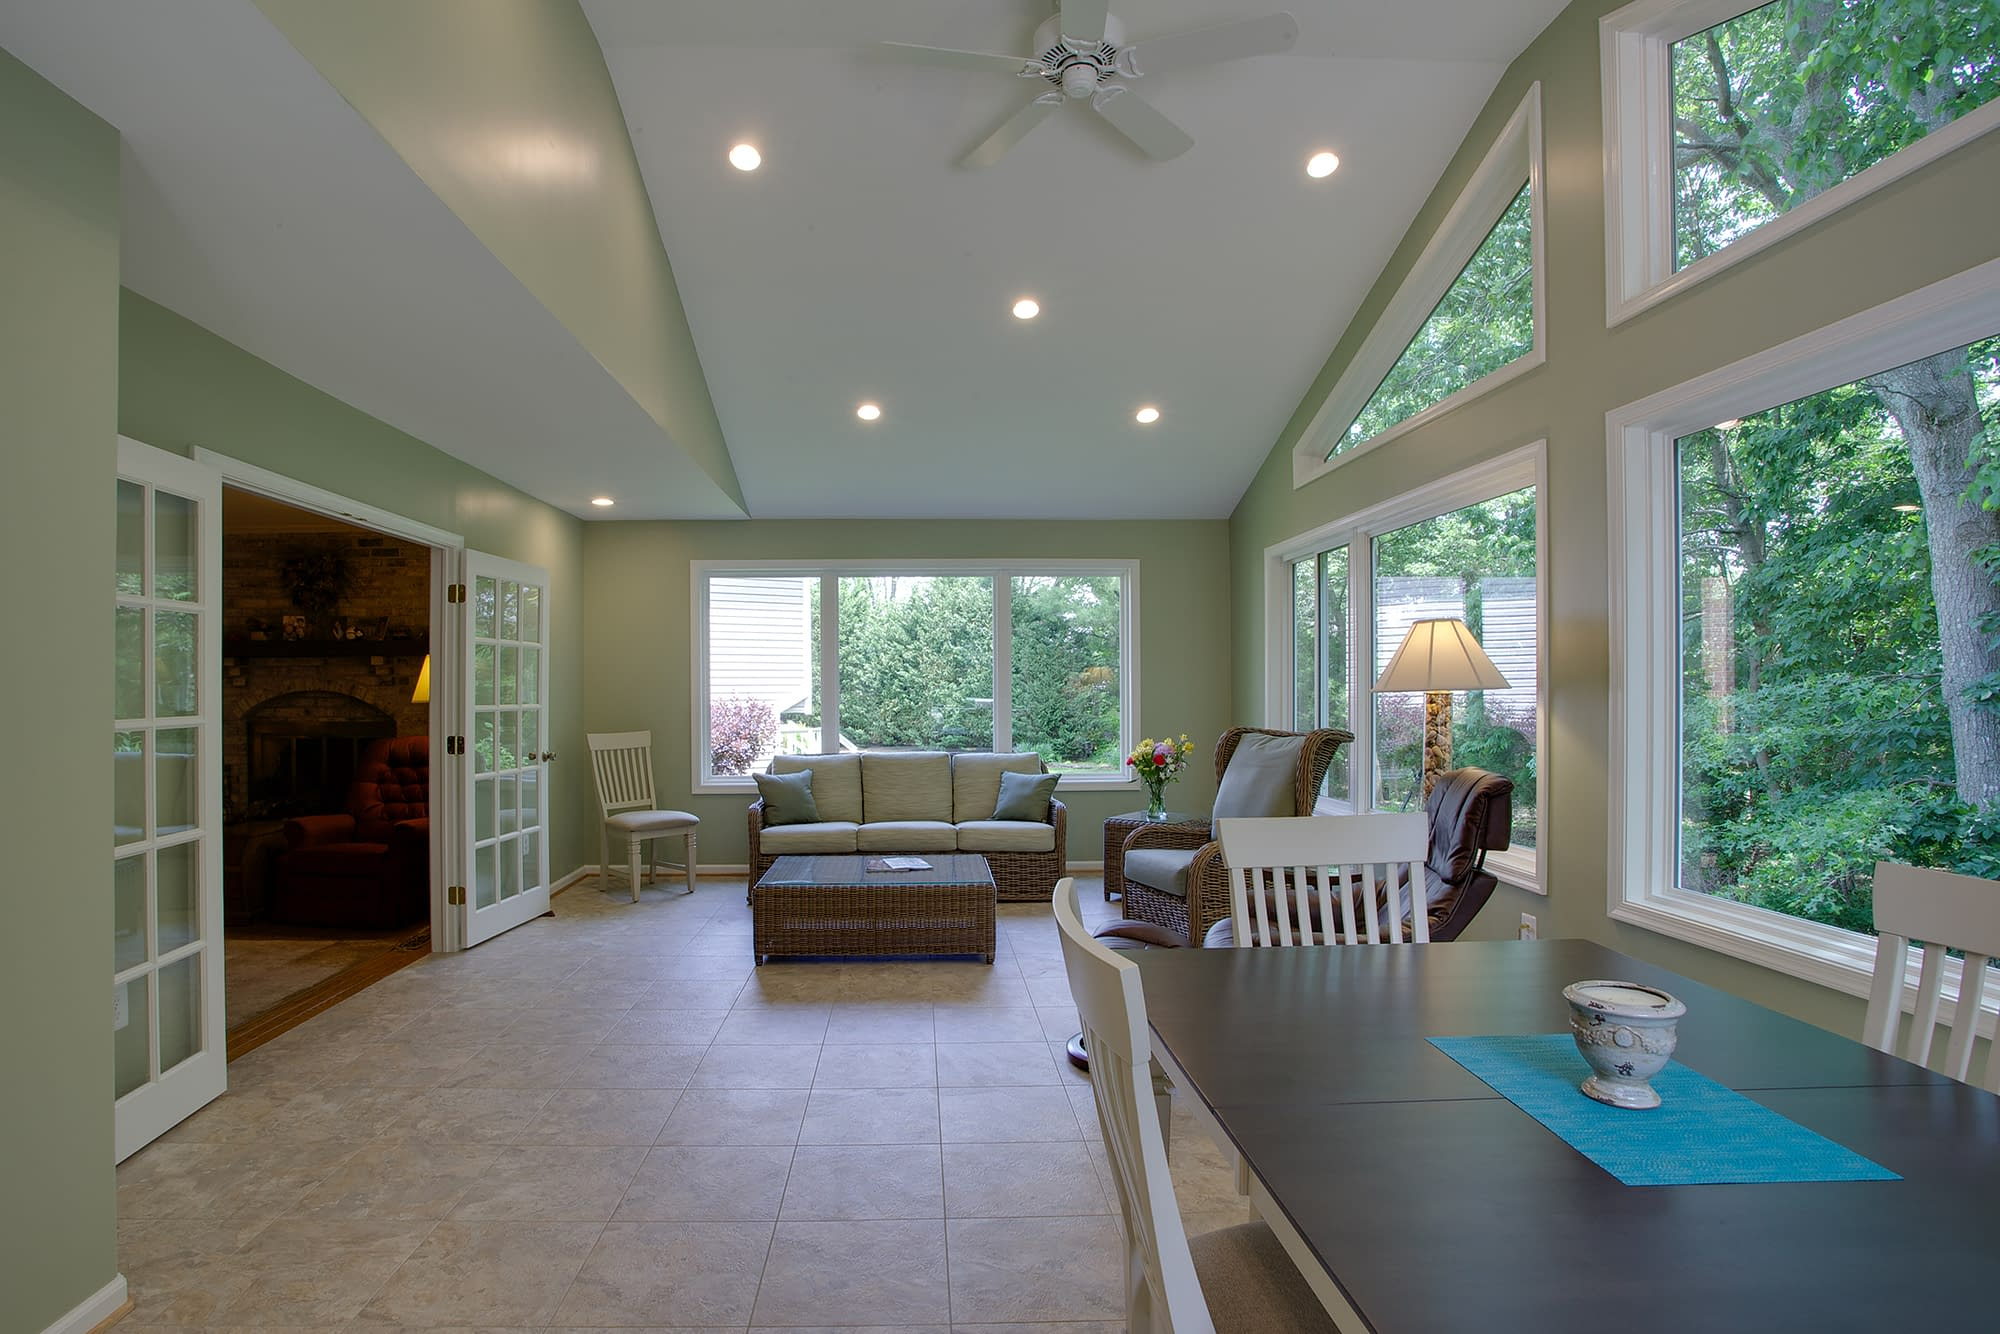 Room Additions in Northern Virginia